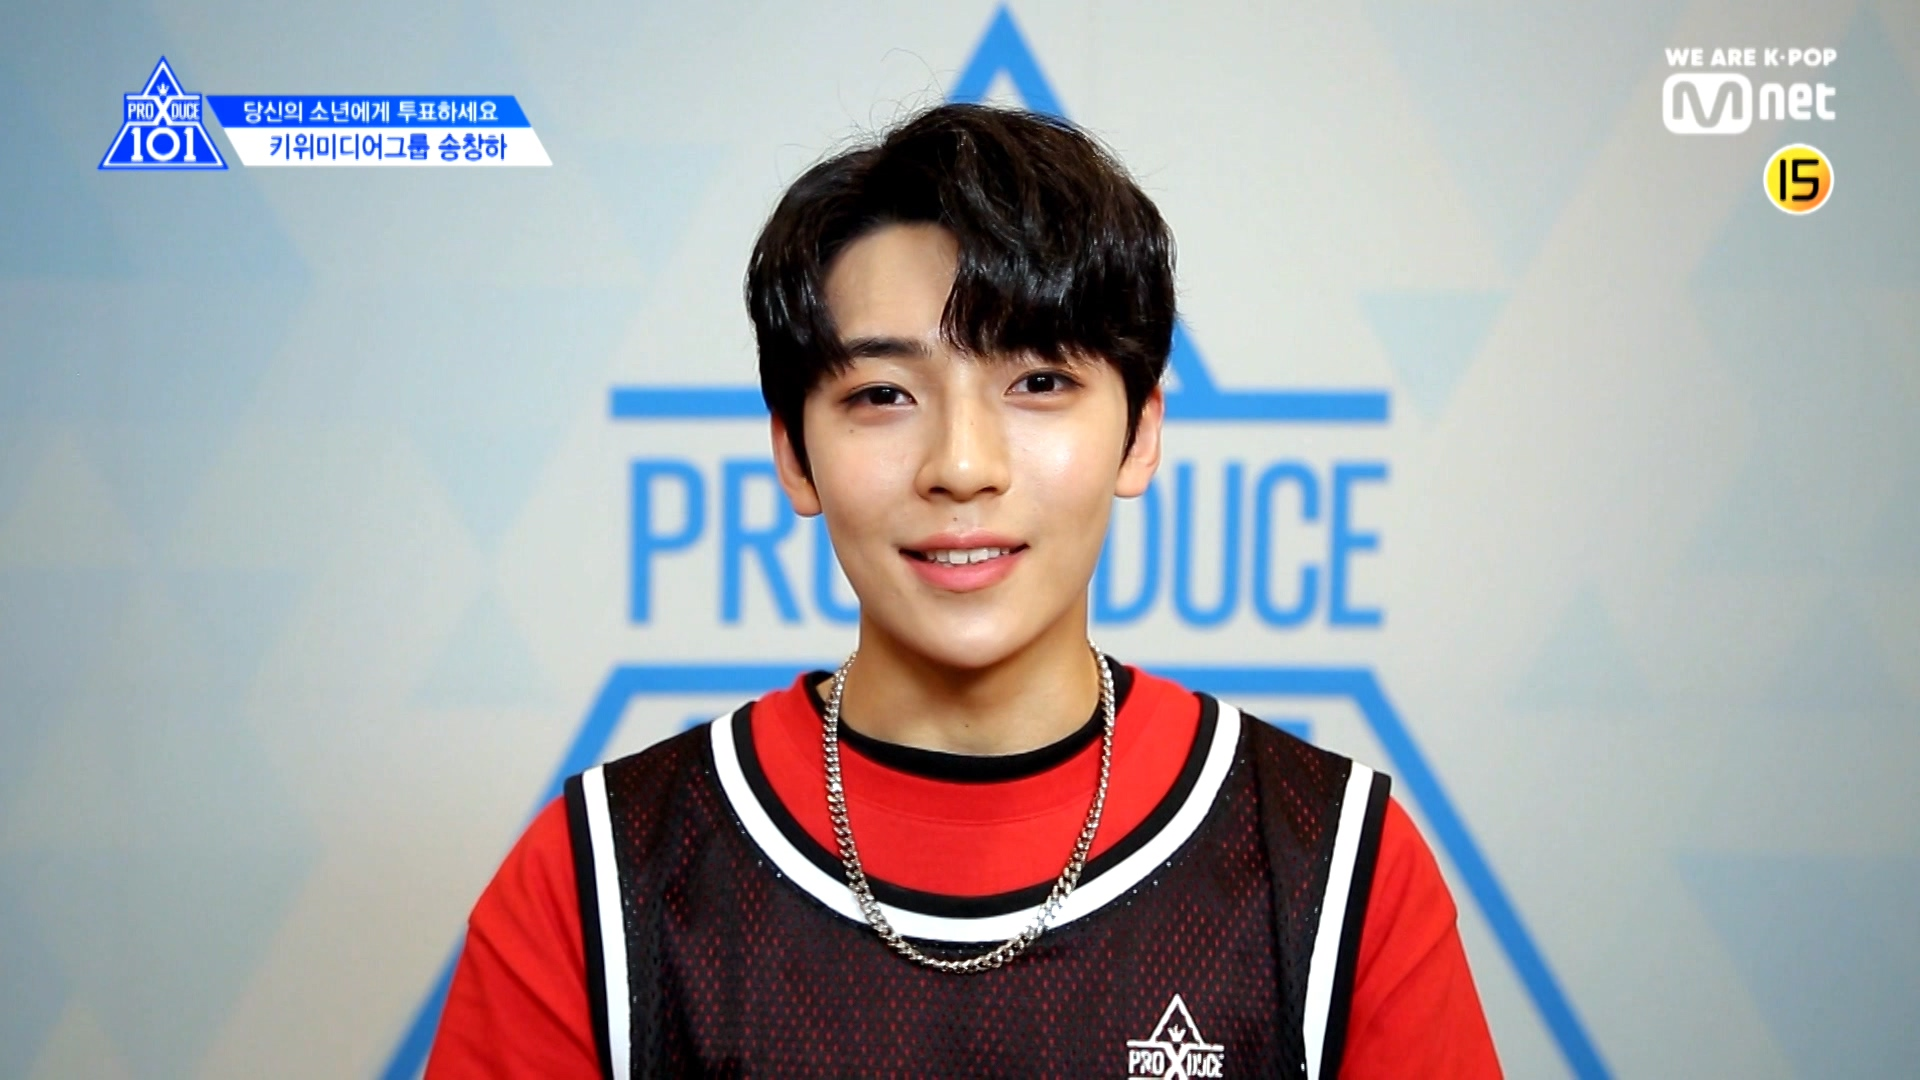 [PRODUCE X 101] EYE CONTACT CHALLENGE l SONG CHANG HA(KIWI MEDIA GROUP)